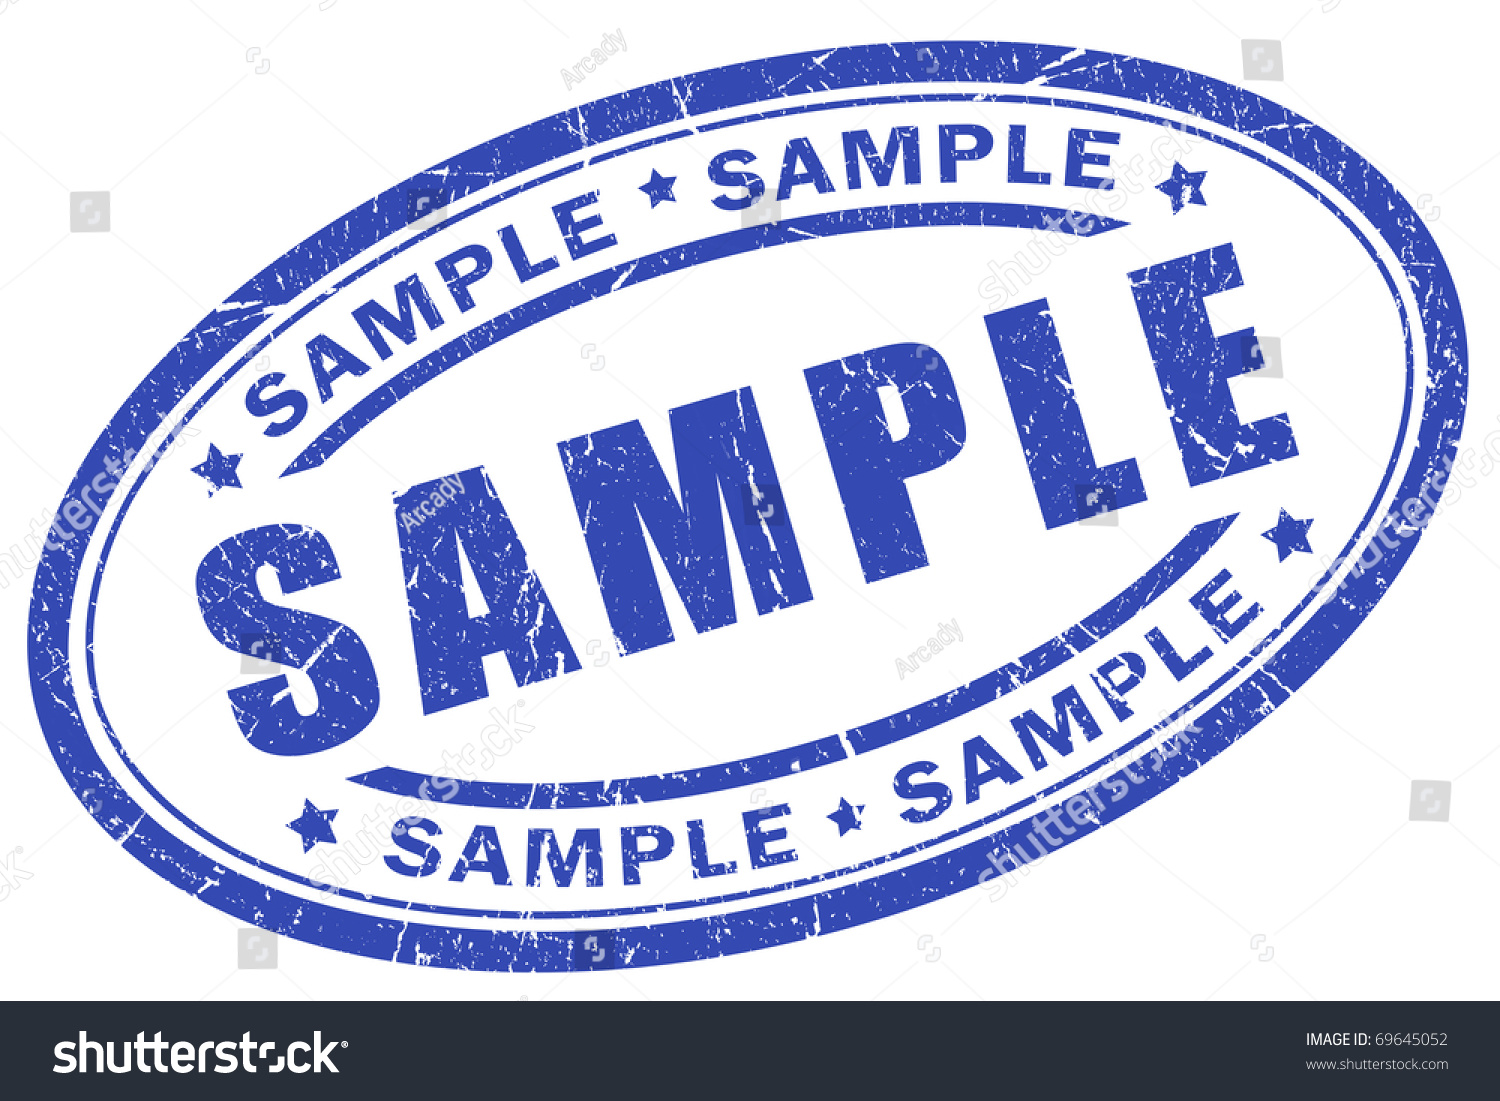 sample stamp stock illustration shutterstock sample stamp